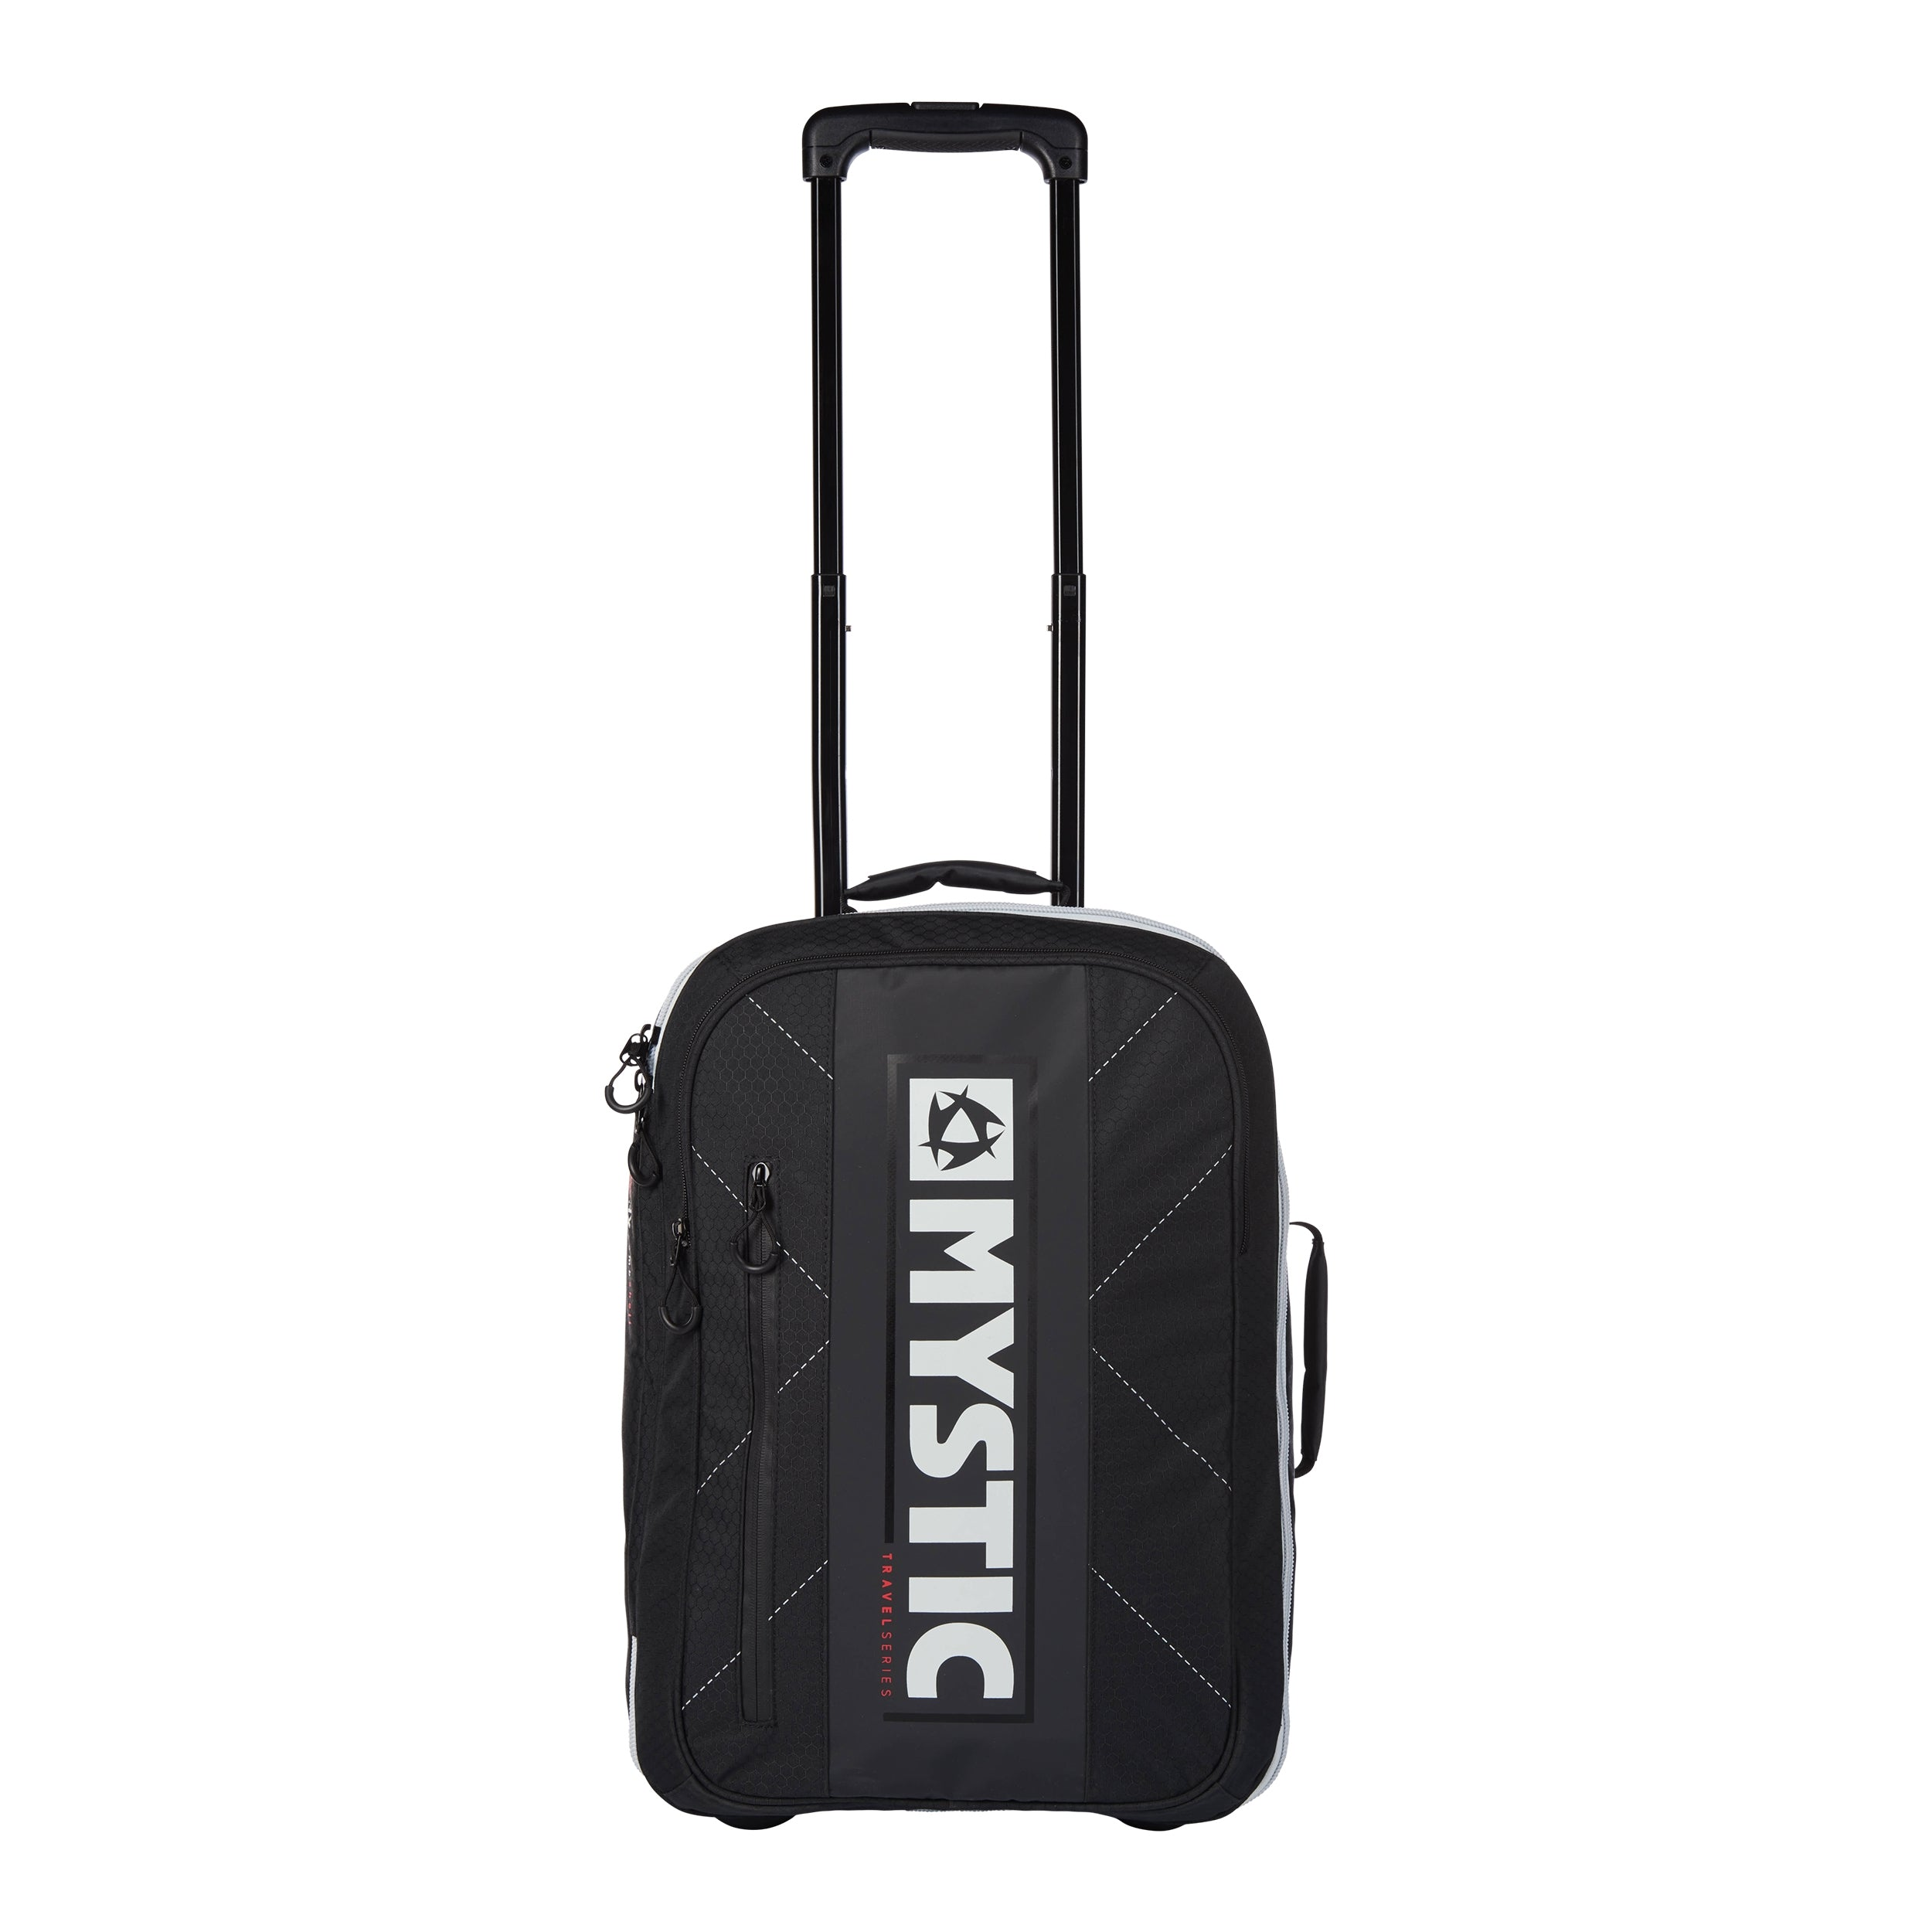 Mystic Flight/Travel Bag with Wheels